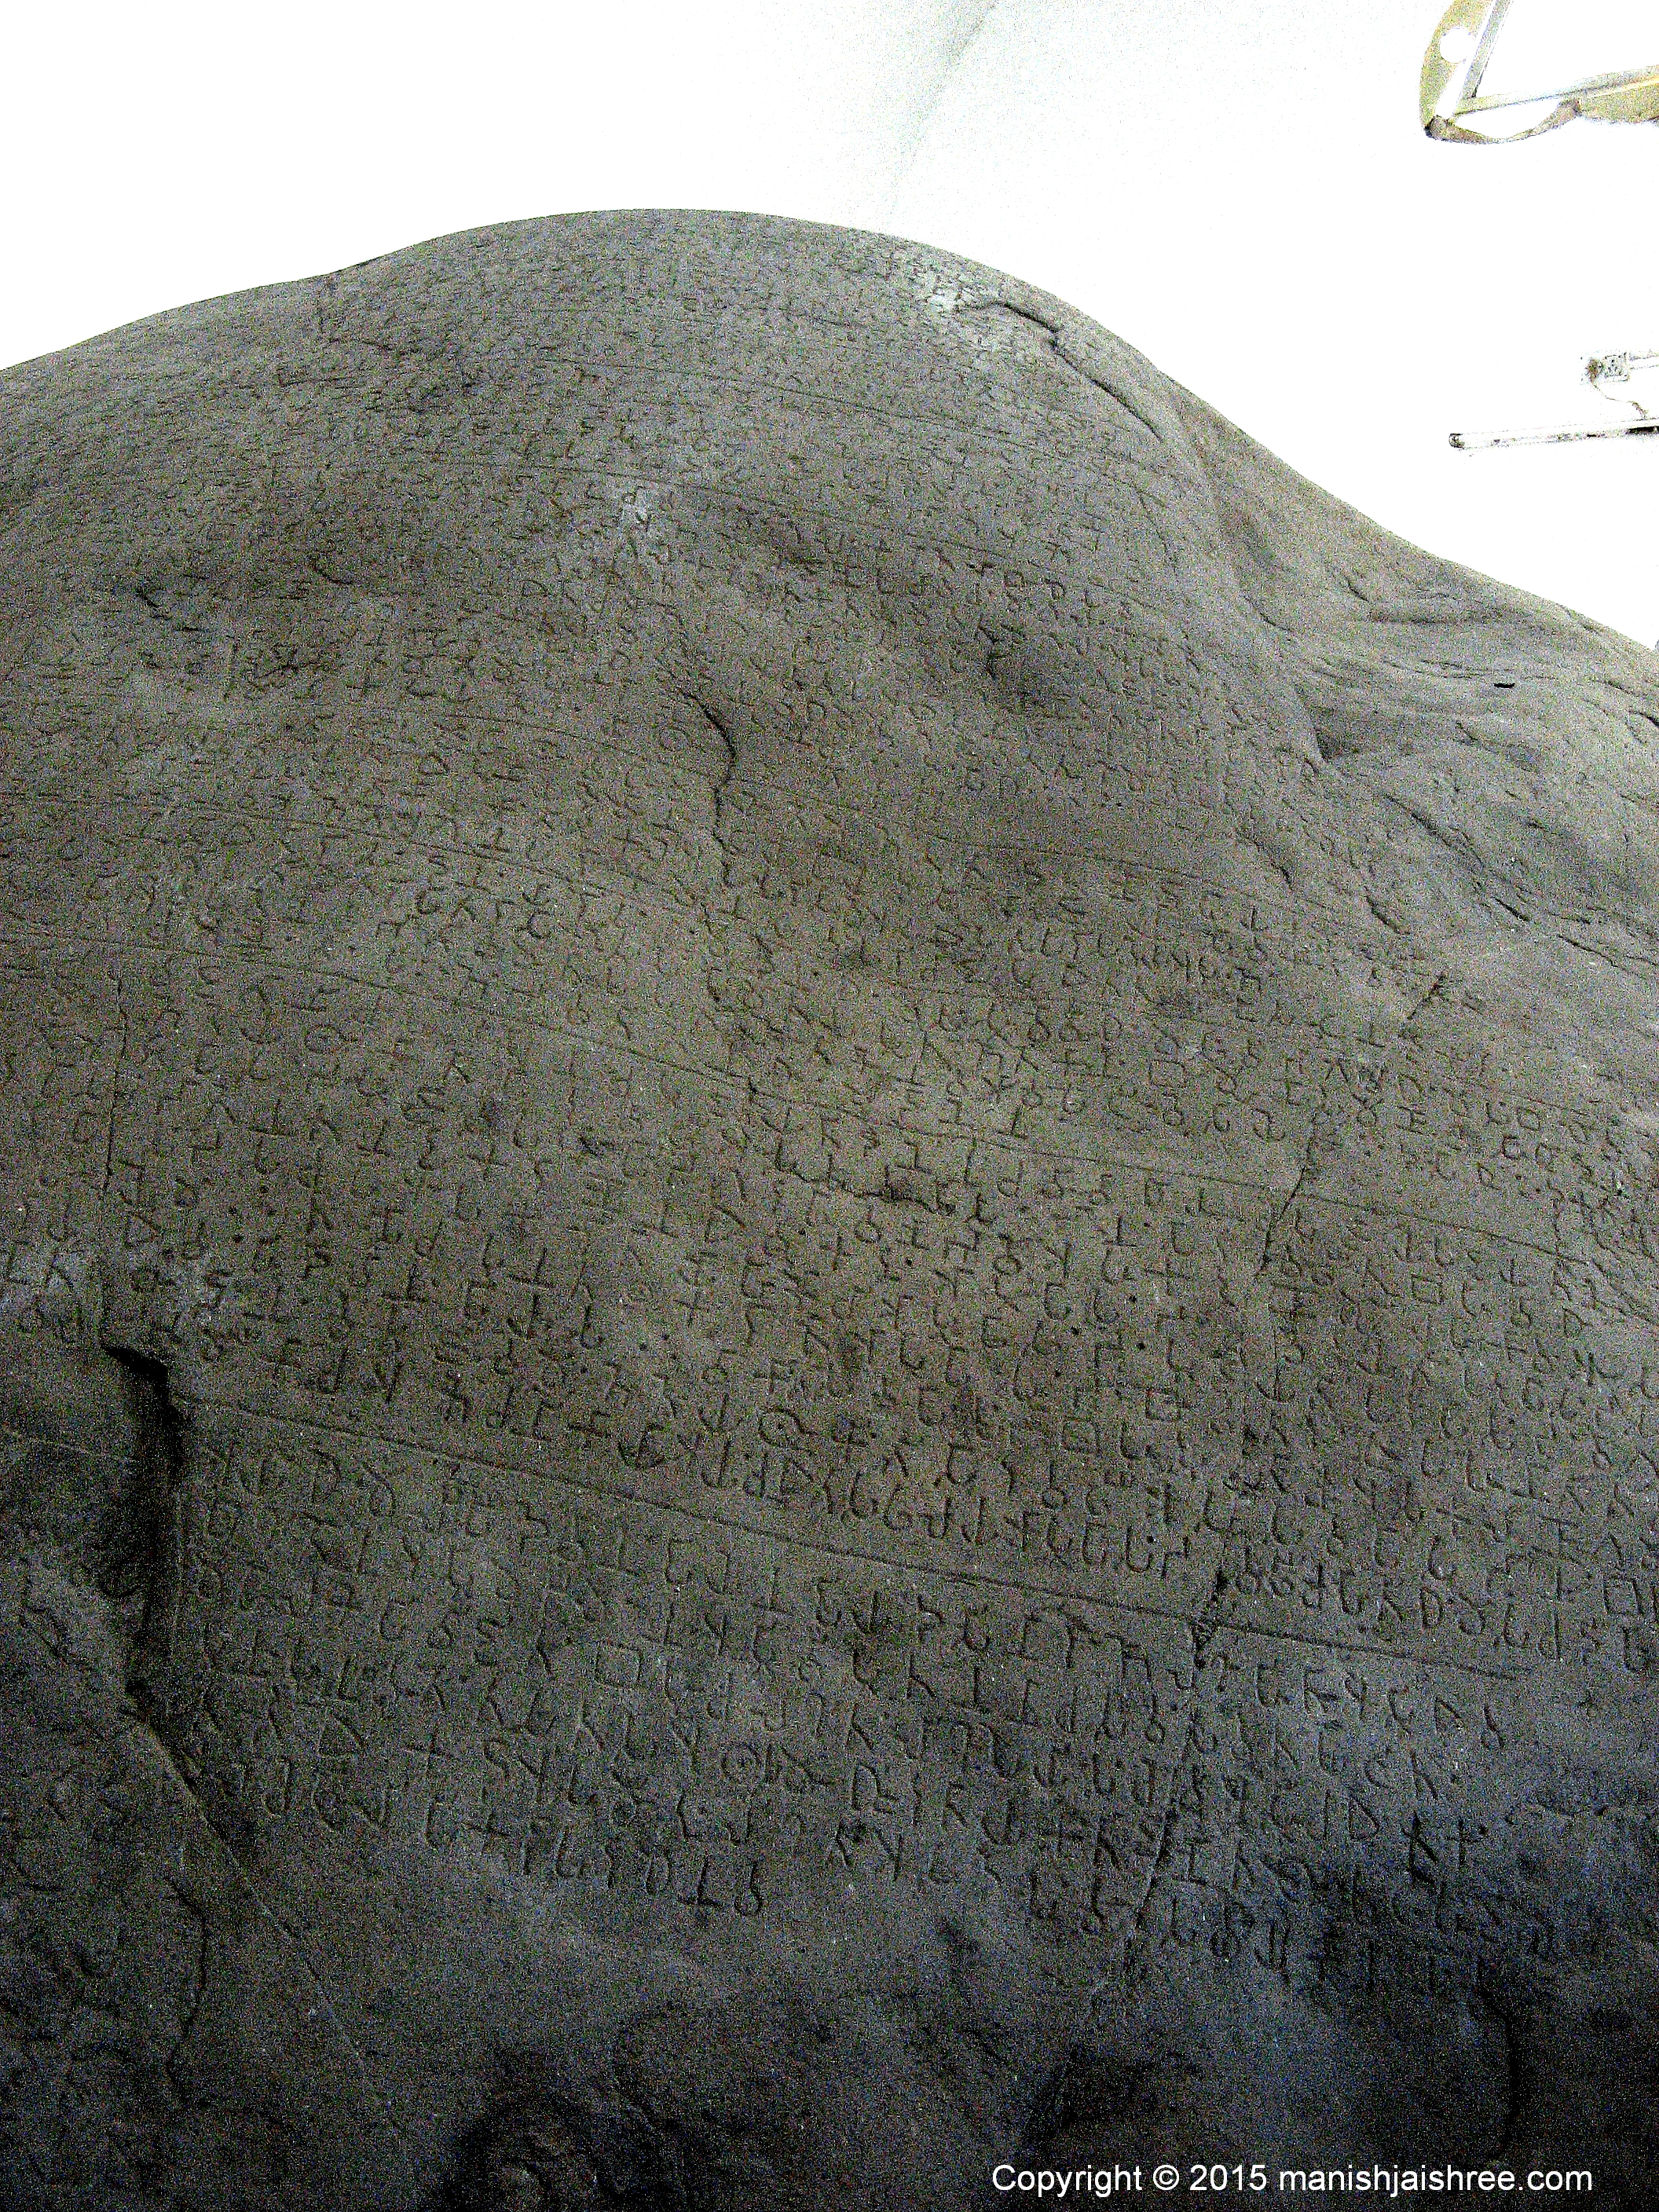 The Girnar Rock-Book, Junagarh